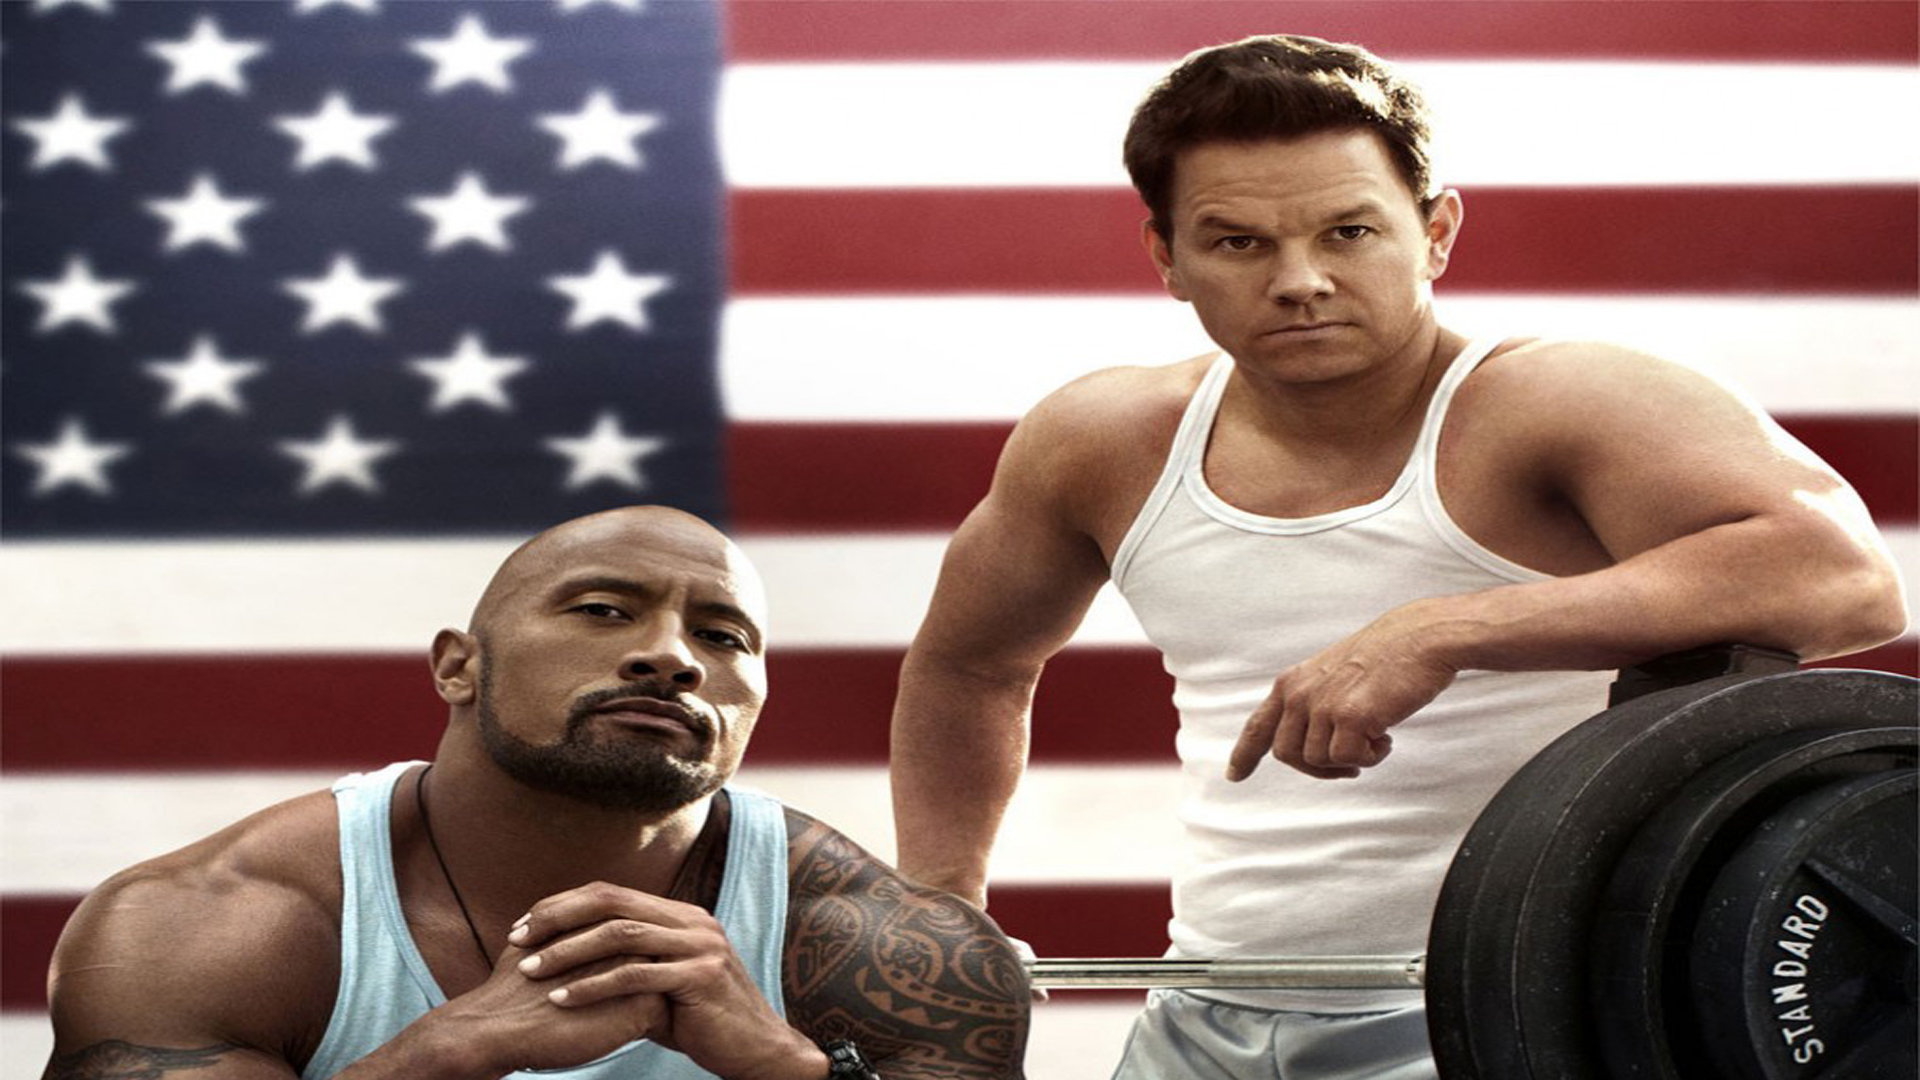 Best Pain And Gain Movie Quotes. QuotesGram